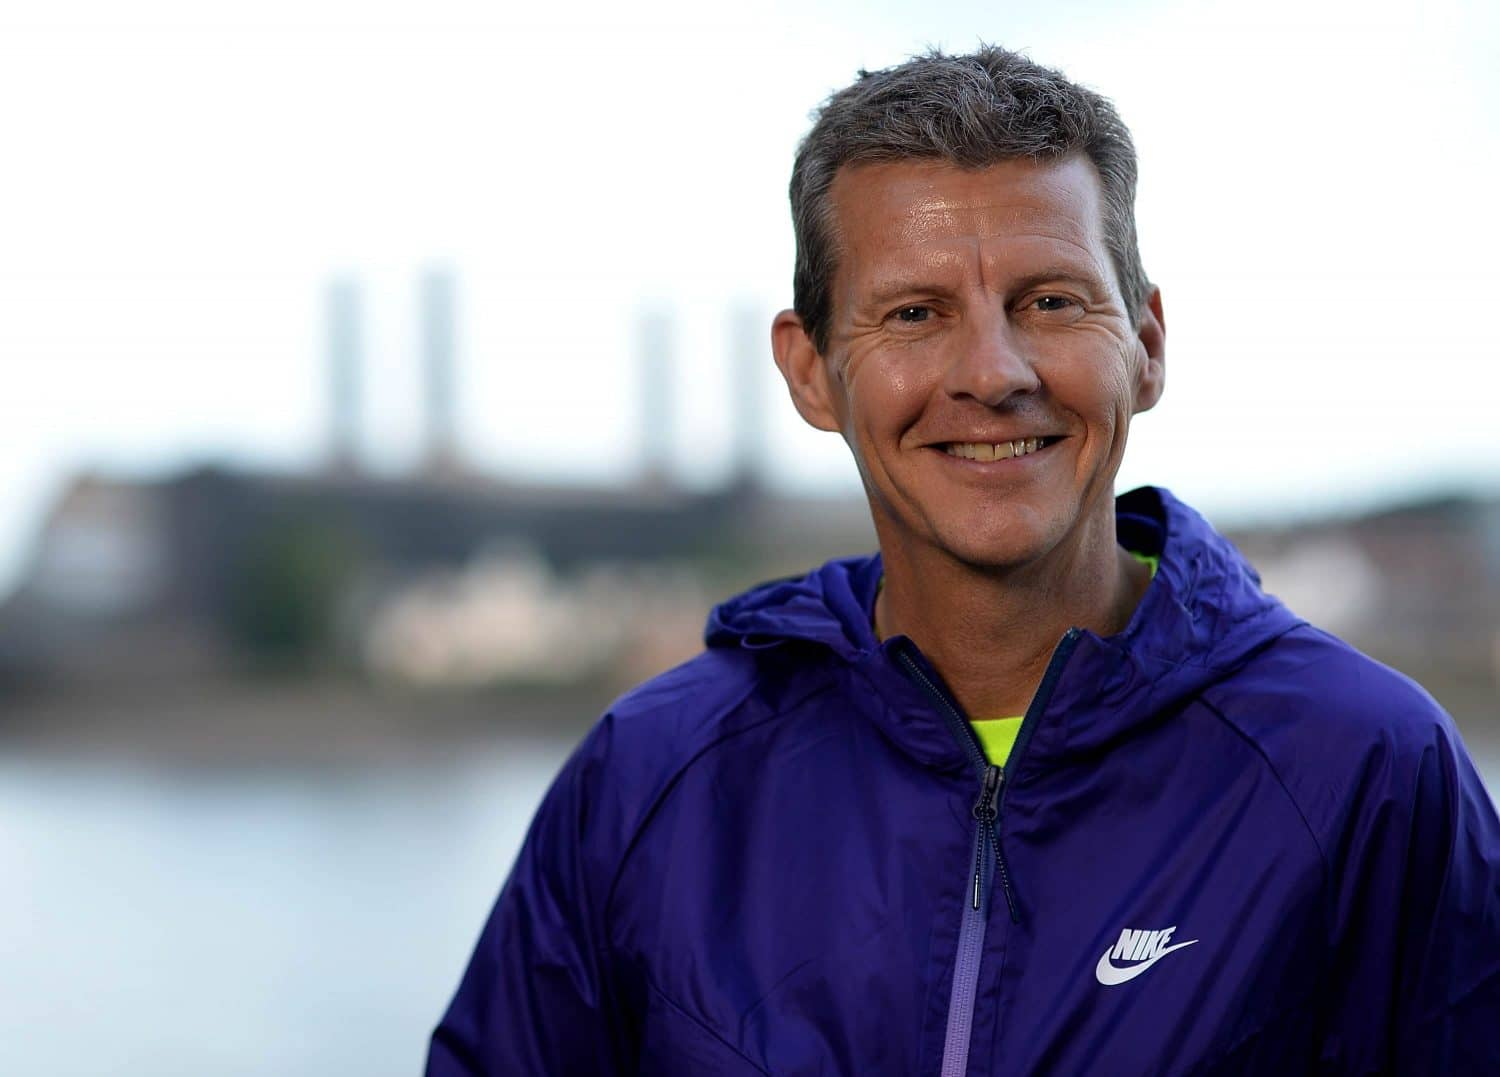 Steve Cram The National Running Show 2020